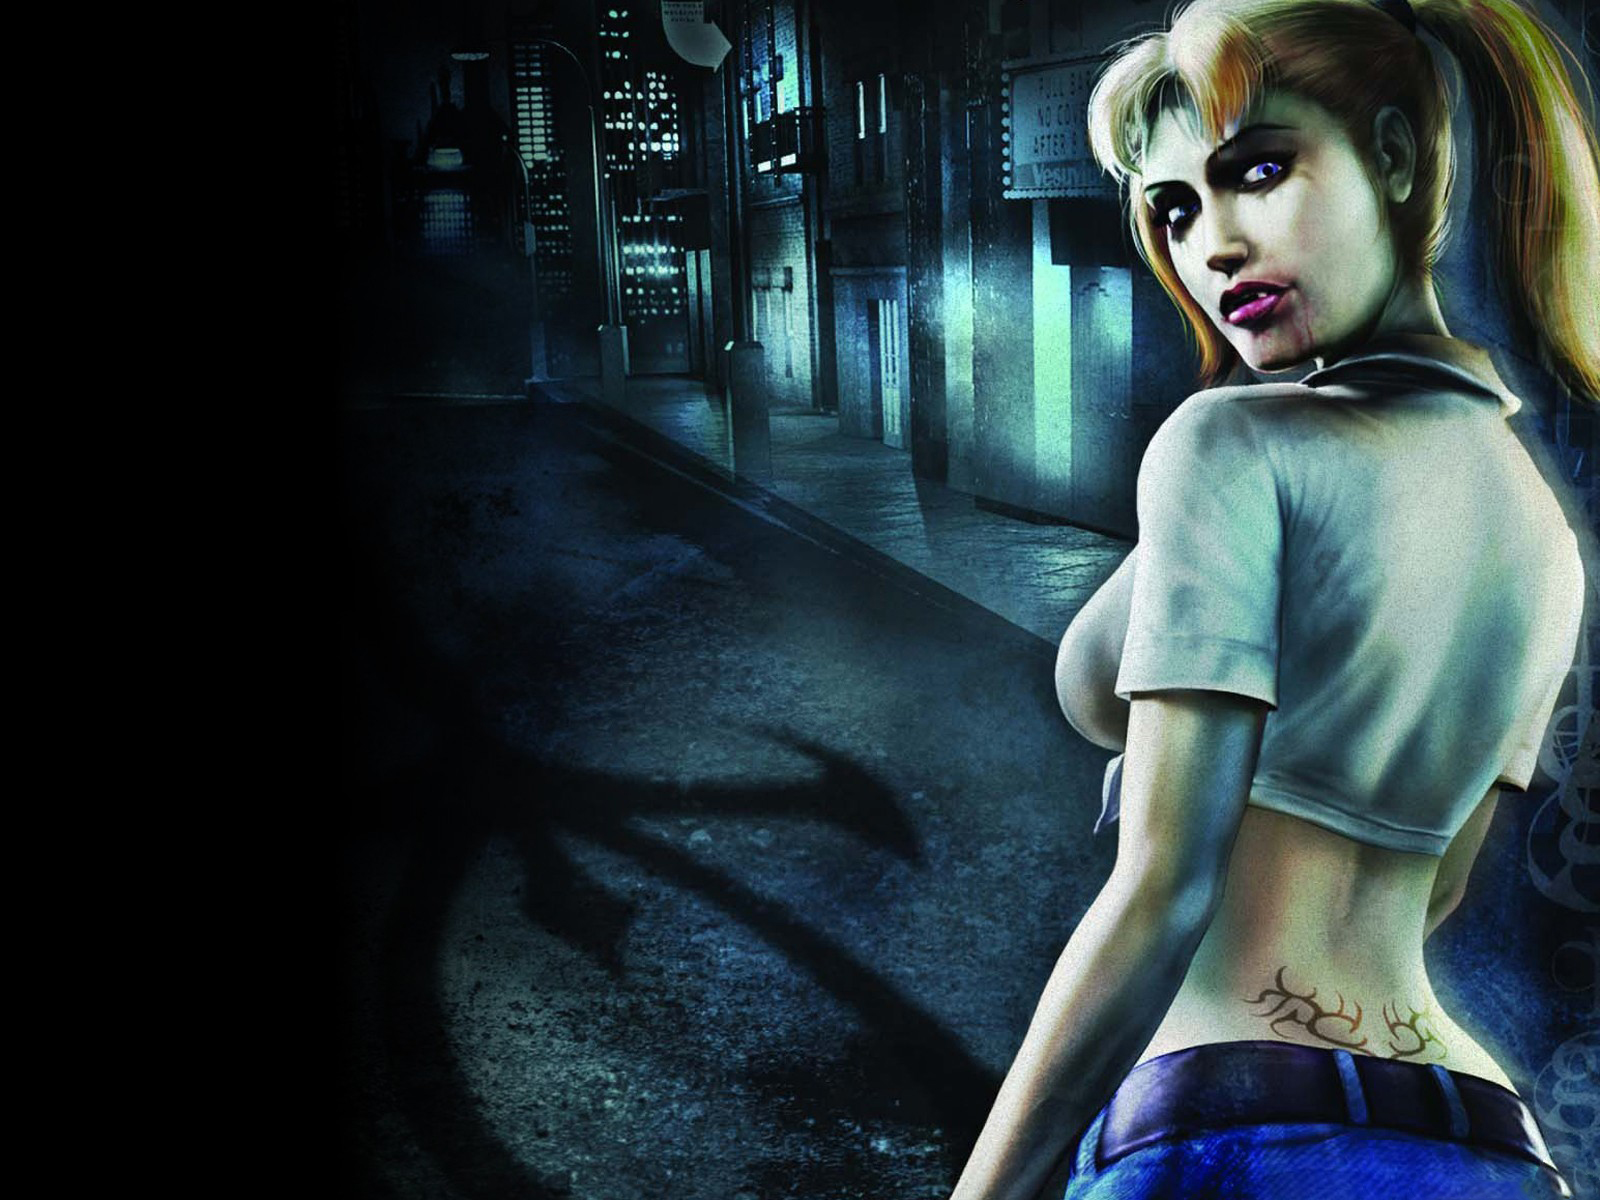 Арт к игре Vampire: The Masquerade - Bloodlines